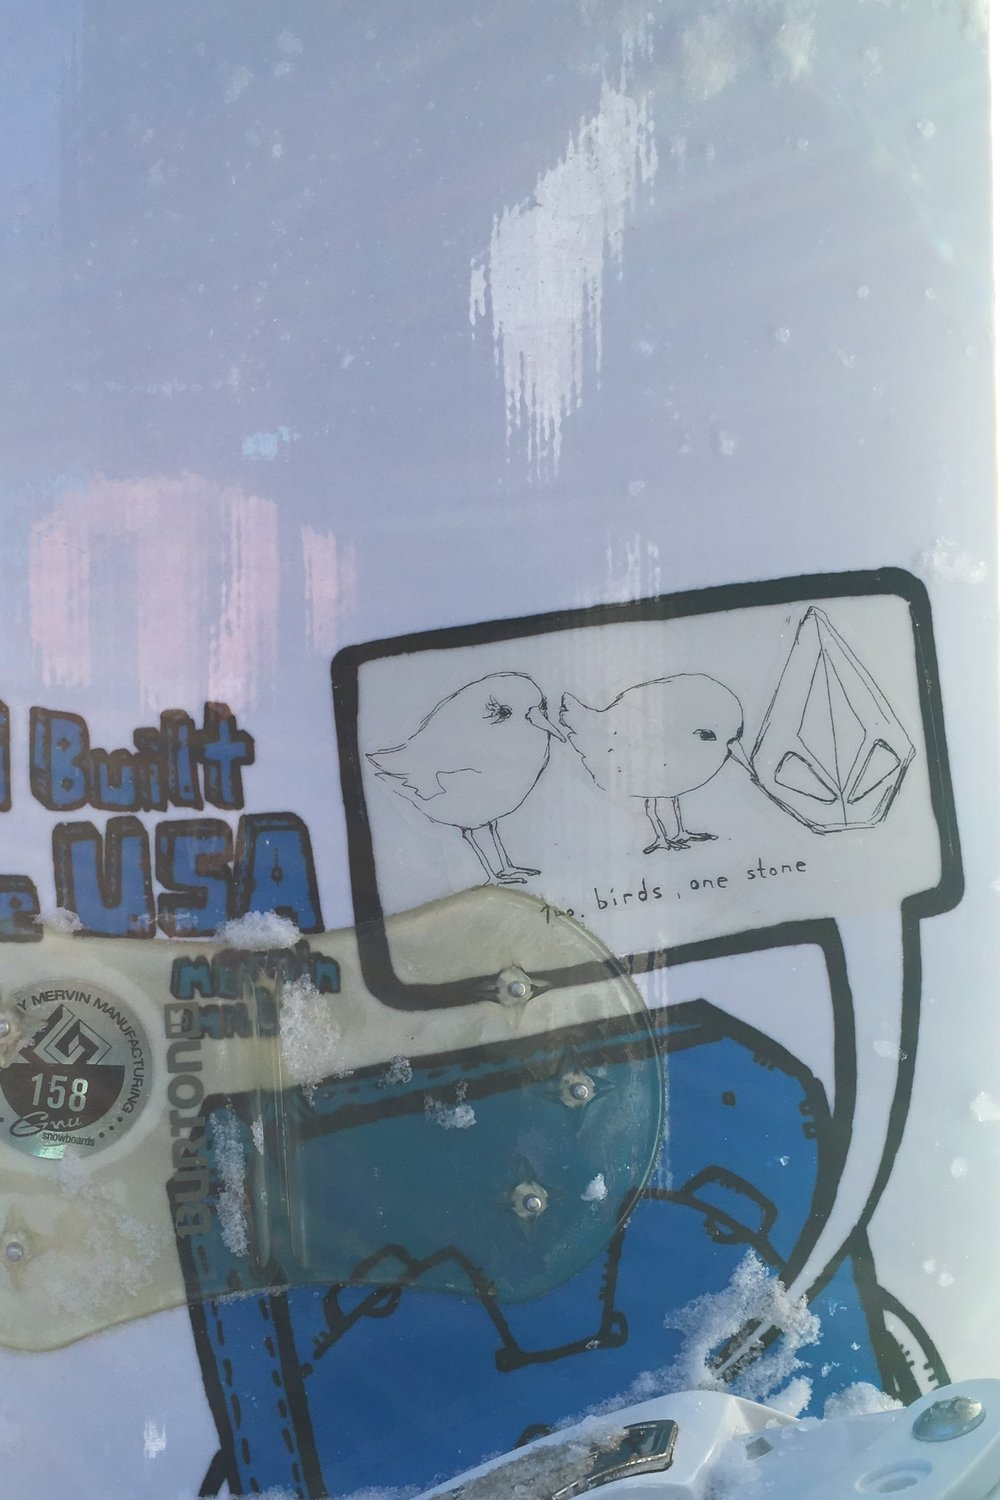 Check it out. A sticker Papa Bird put on his snowboard over 8 years ago. I think it was destiny for the blog to be called what it is :)